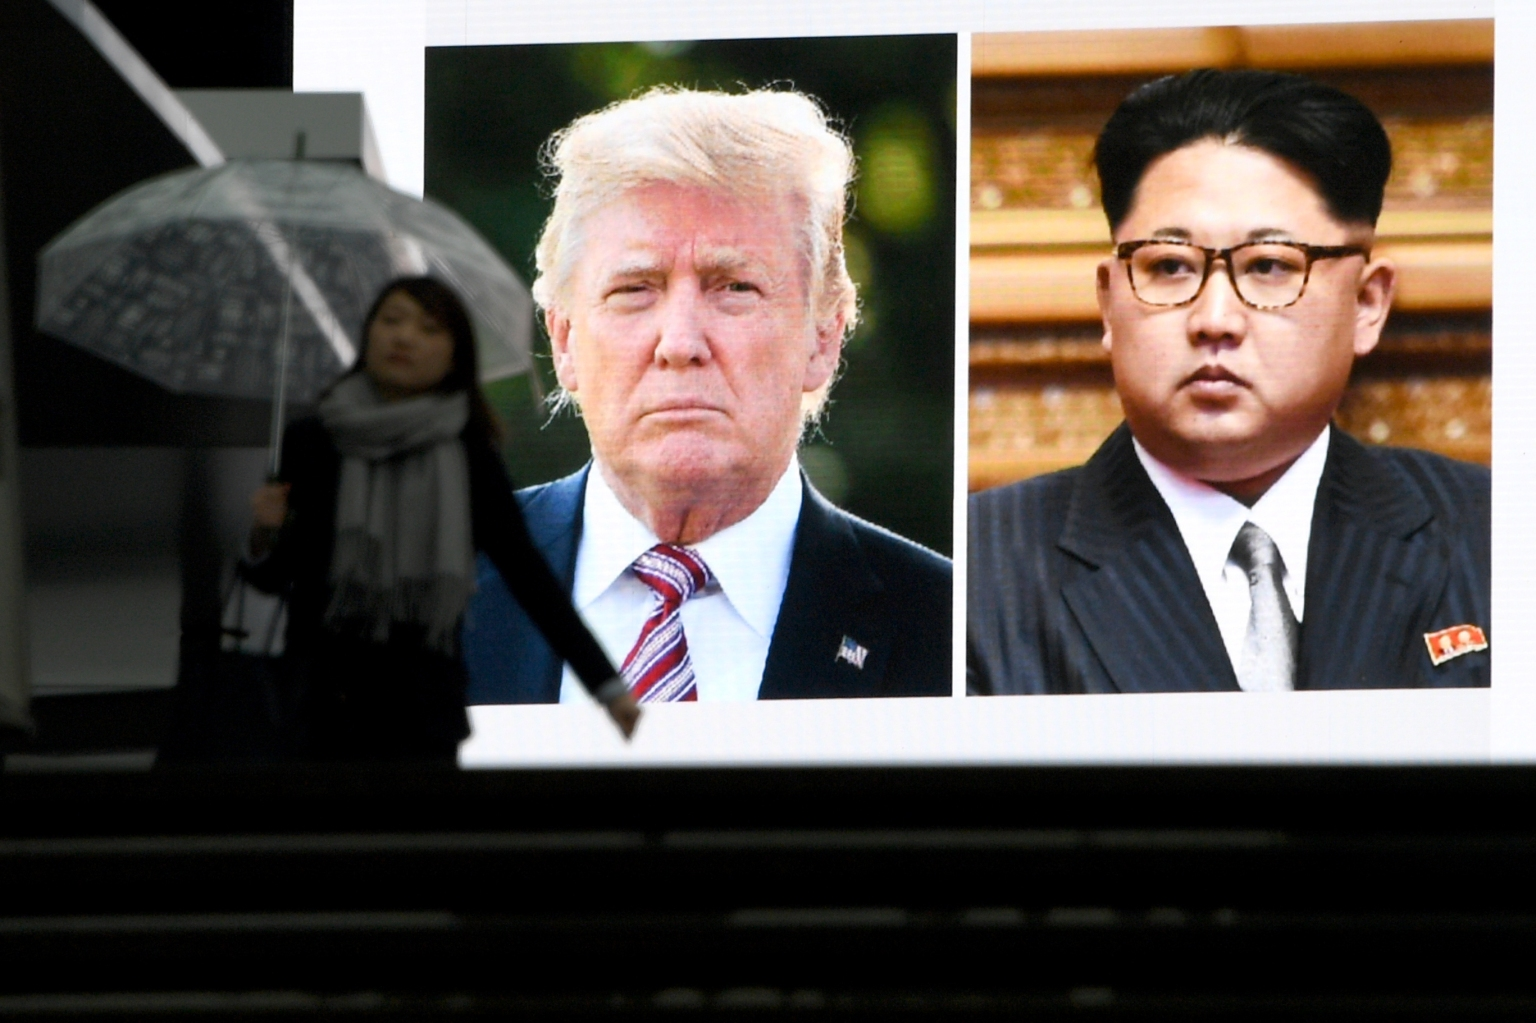 TOPSHOT - A pedestrian walks in front of a huge screen flashing a news report relating to US President Donald Trump and North Korean leader Kim Jong agreeing to meet for talks in Tokyo on March 9, 2018.   Japan's prime minister on March 9 welcomed the surprise announcement of a summit between US President Donald Trump and North Korea's Kim Jong Un by the end of May. / AFP PHOTO / Toshifumi KITAMURA        (Photo credit should read TOSHIFUMI KITAMURA/AFP/Getty Images)